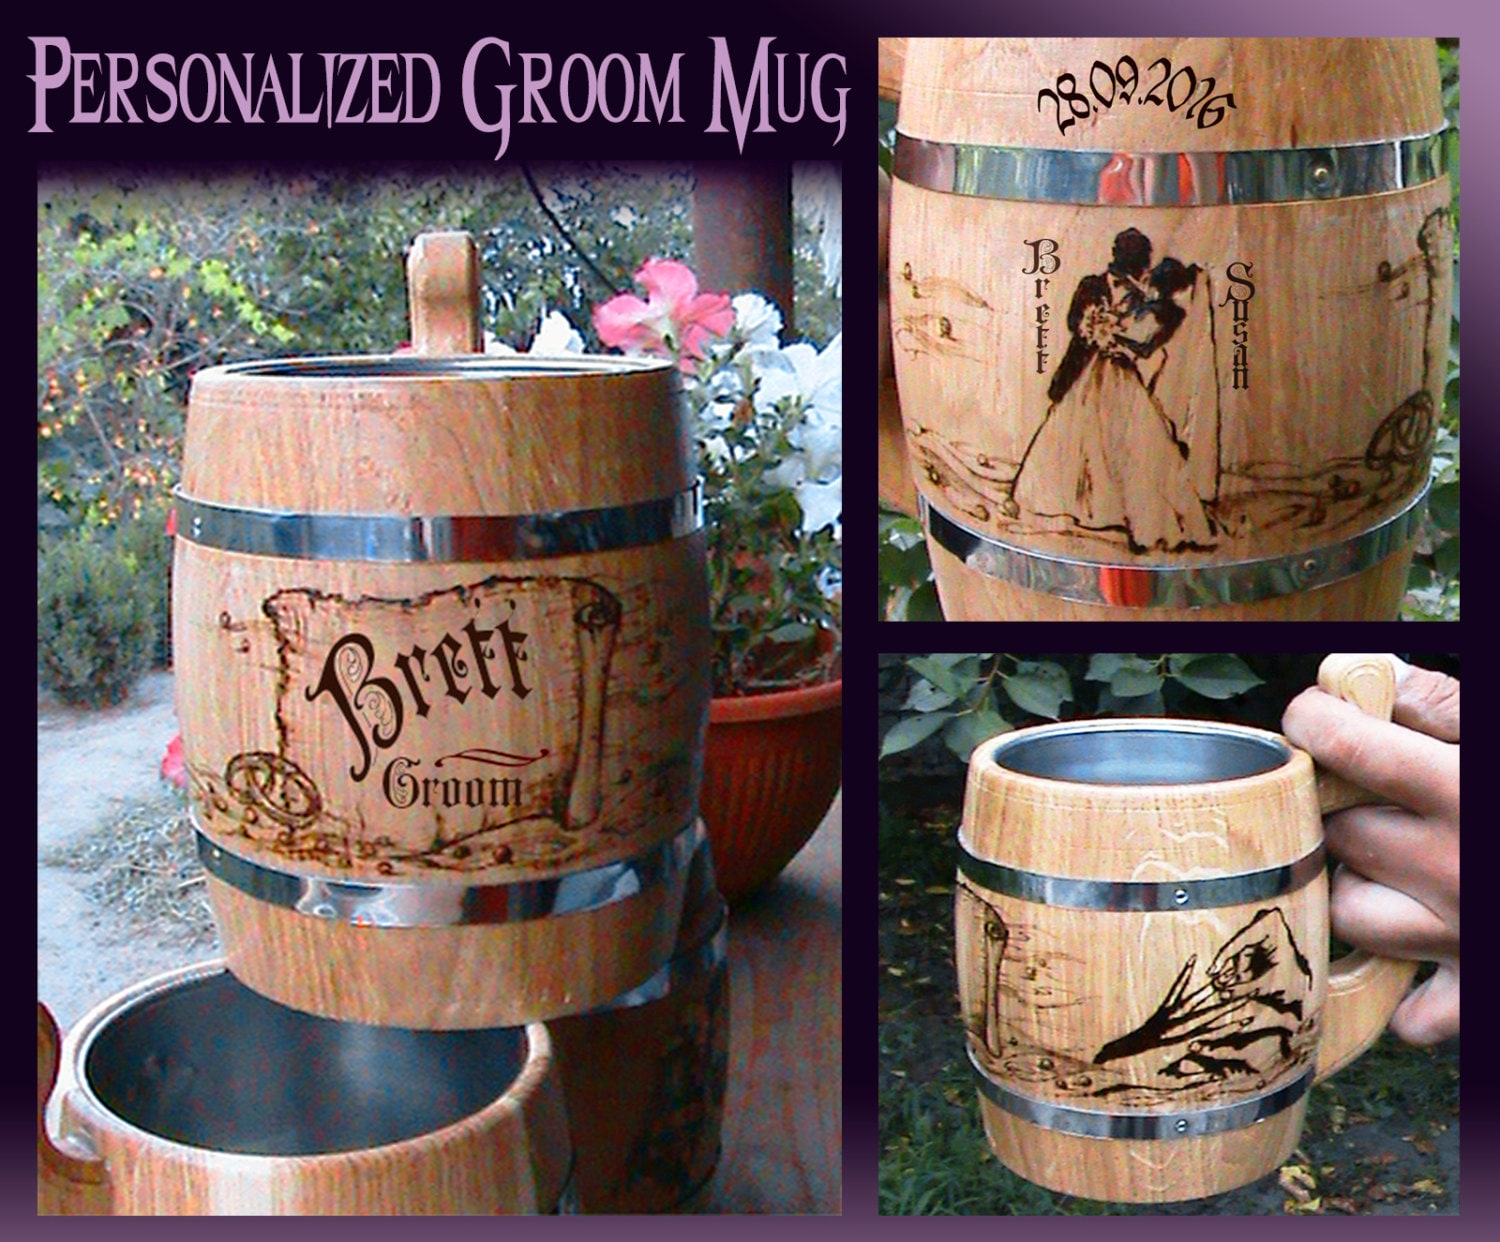 Personalized Groom Beer Mug/Wedding Gift For Groom From